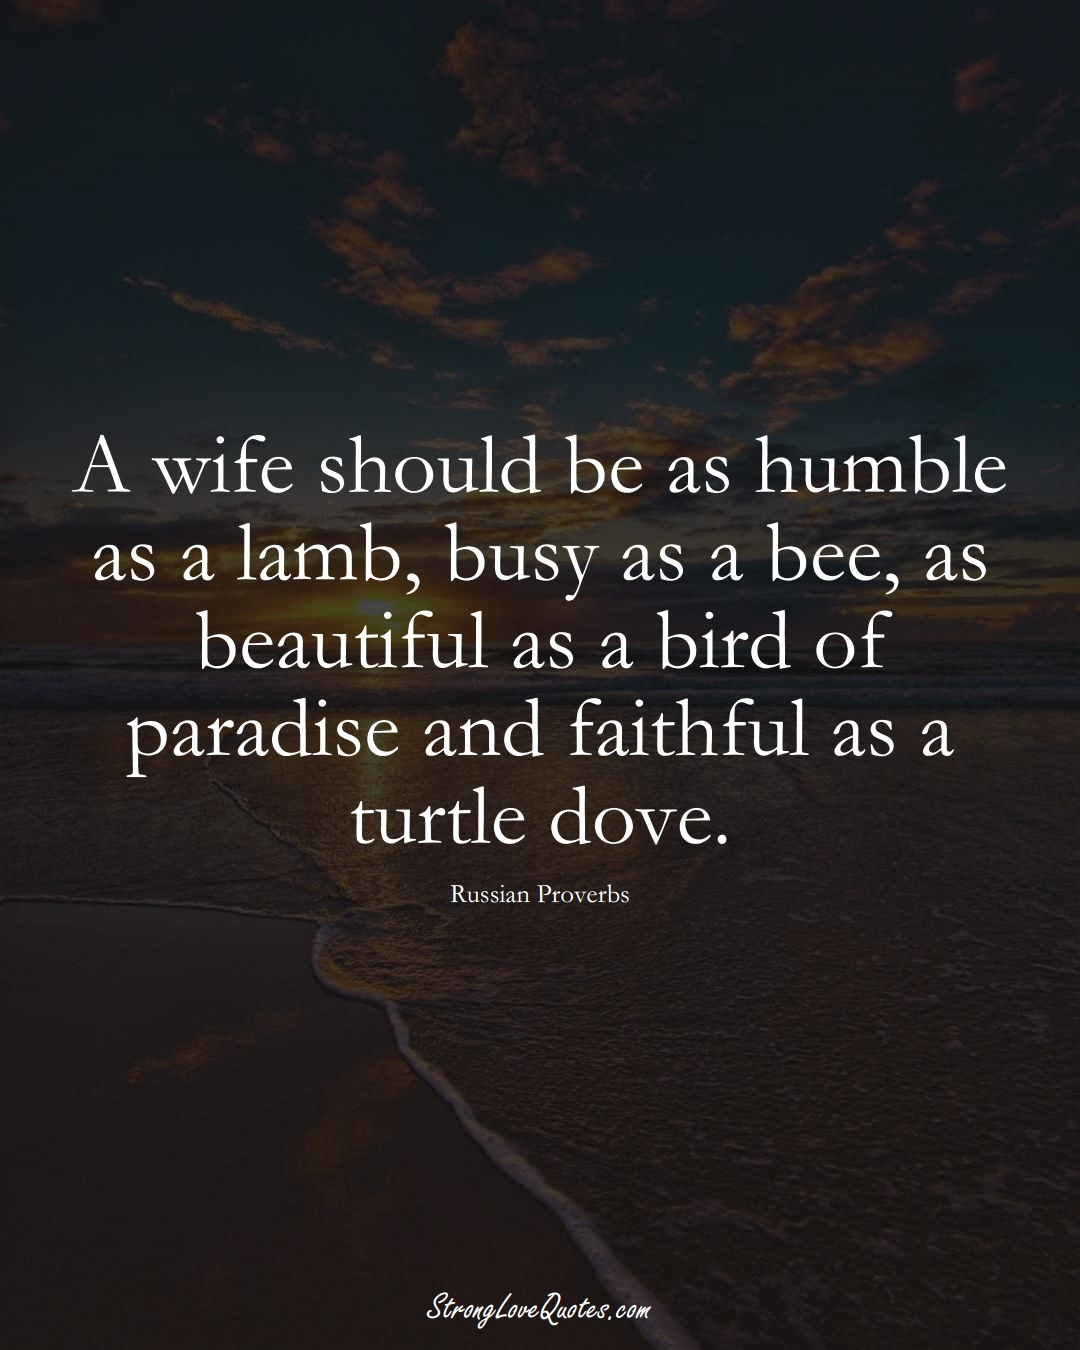 A wife should be as humble as a lamb, busy as a bee, as beautiful as a bird of paradise and faithful as a turtle dove. (Russian Sayings);  #AsianSayings